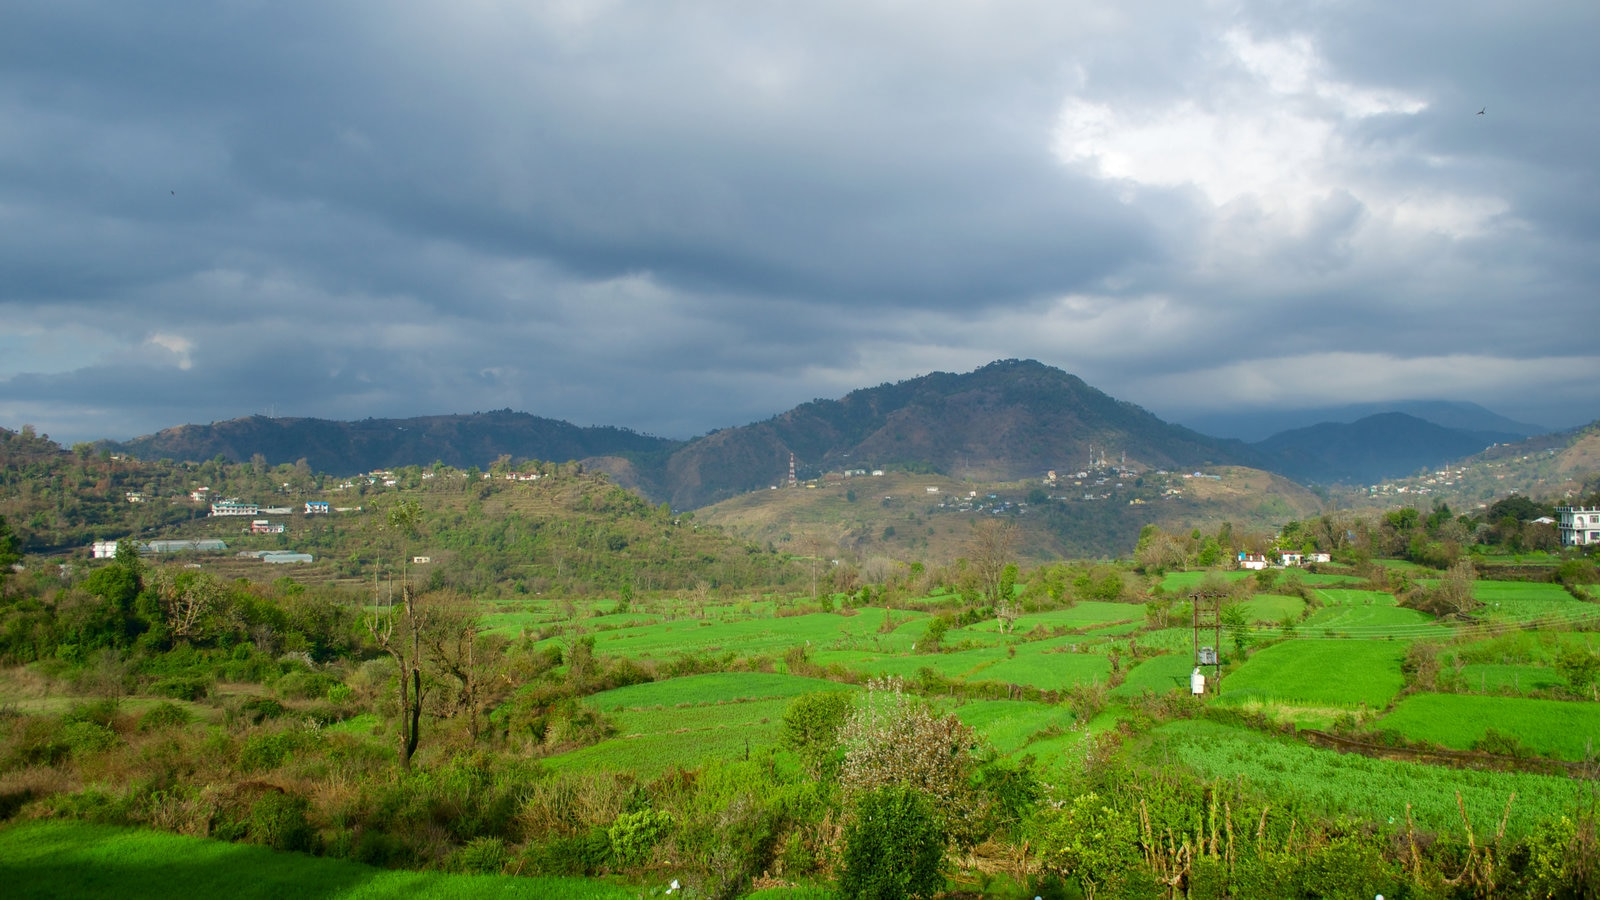 Uttarakhand which includes farmland, tranquil scenes and mountains